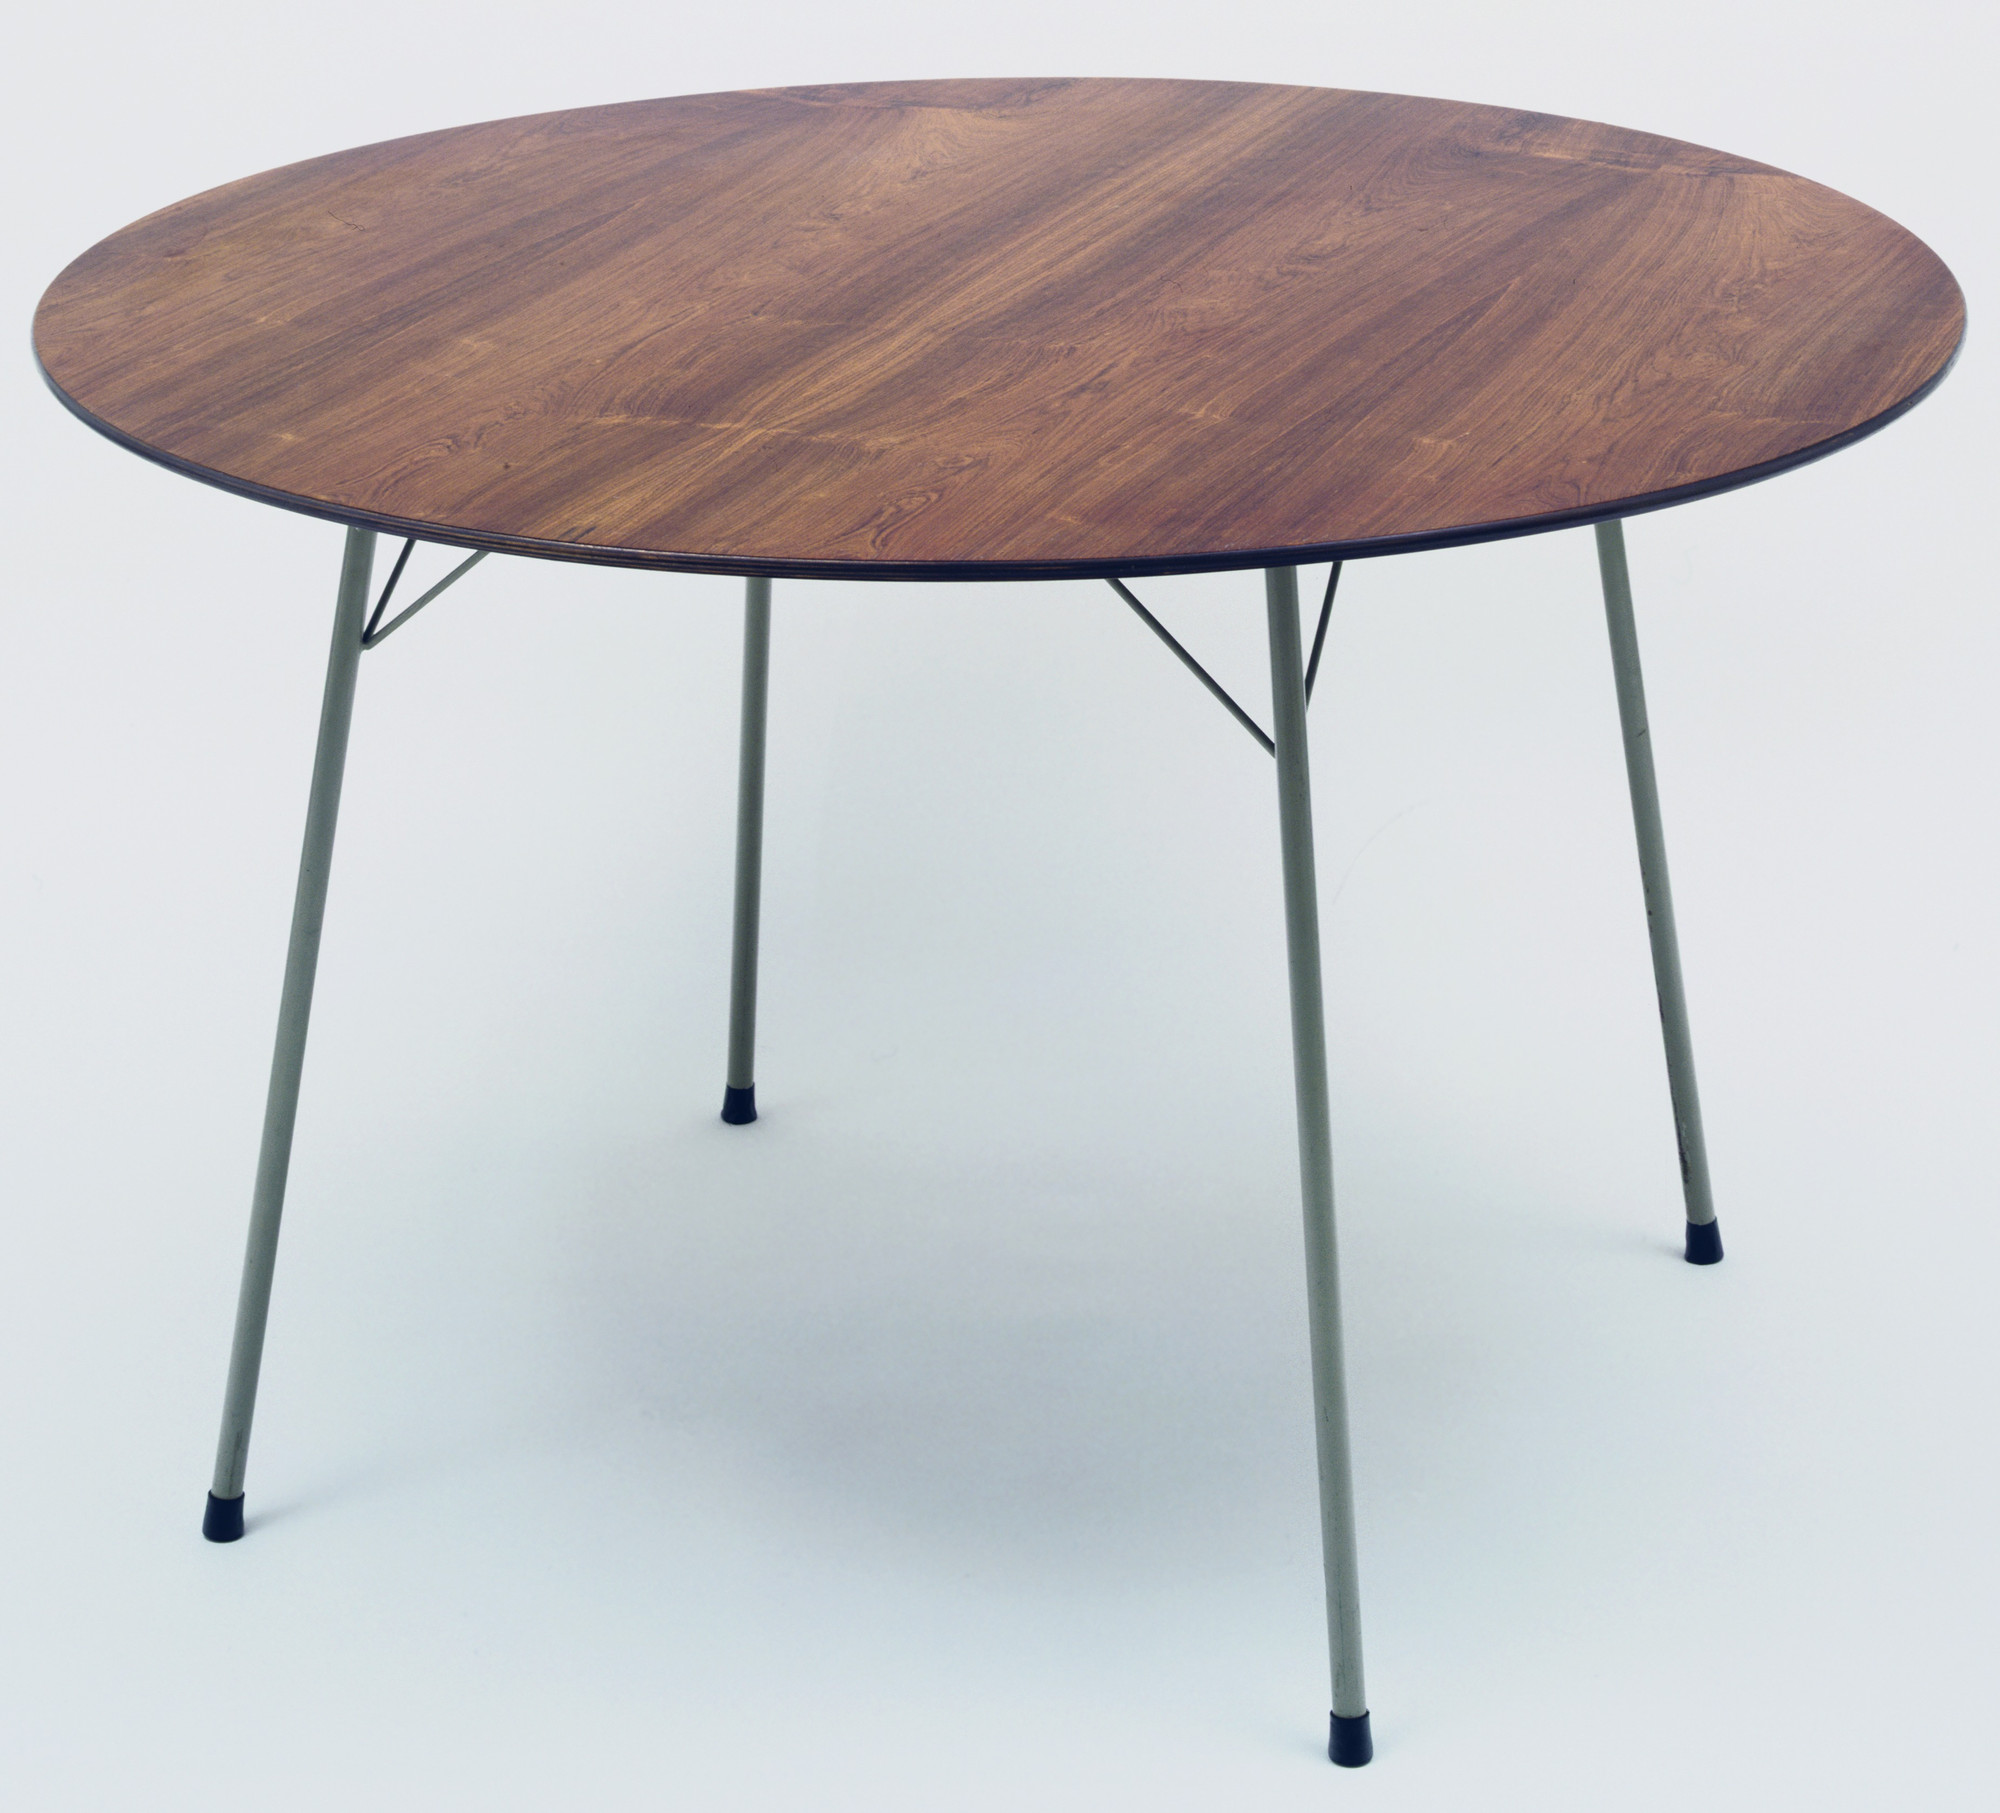 Arne Jacobsen. Table. c.1952